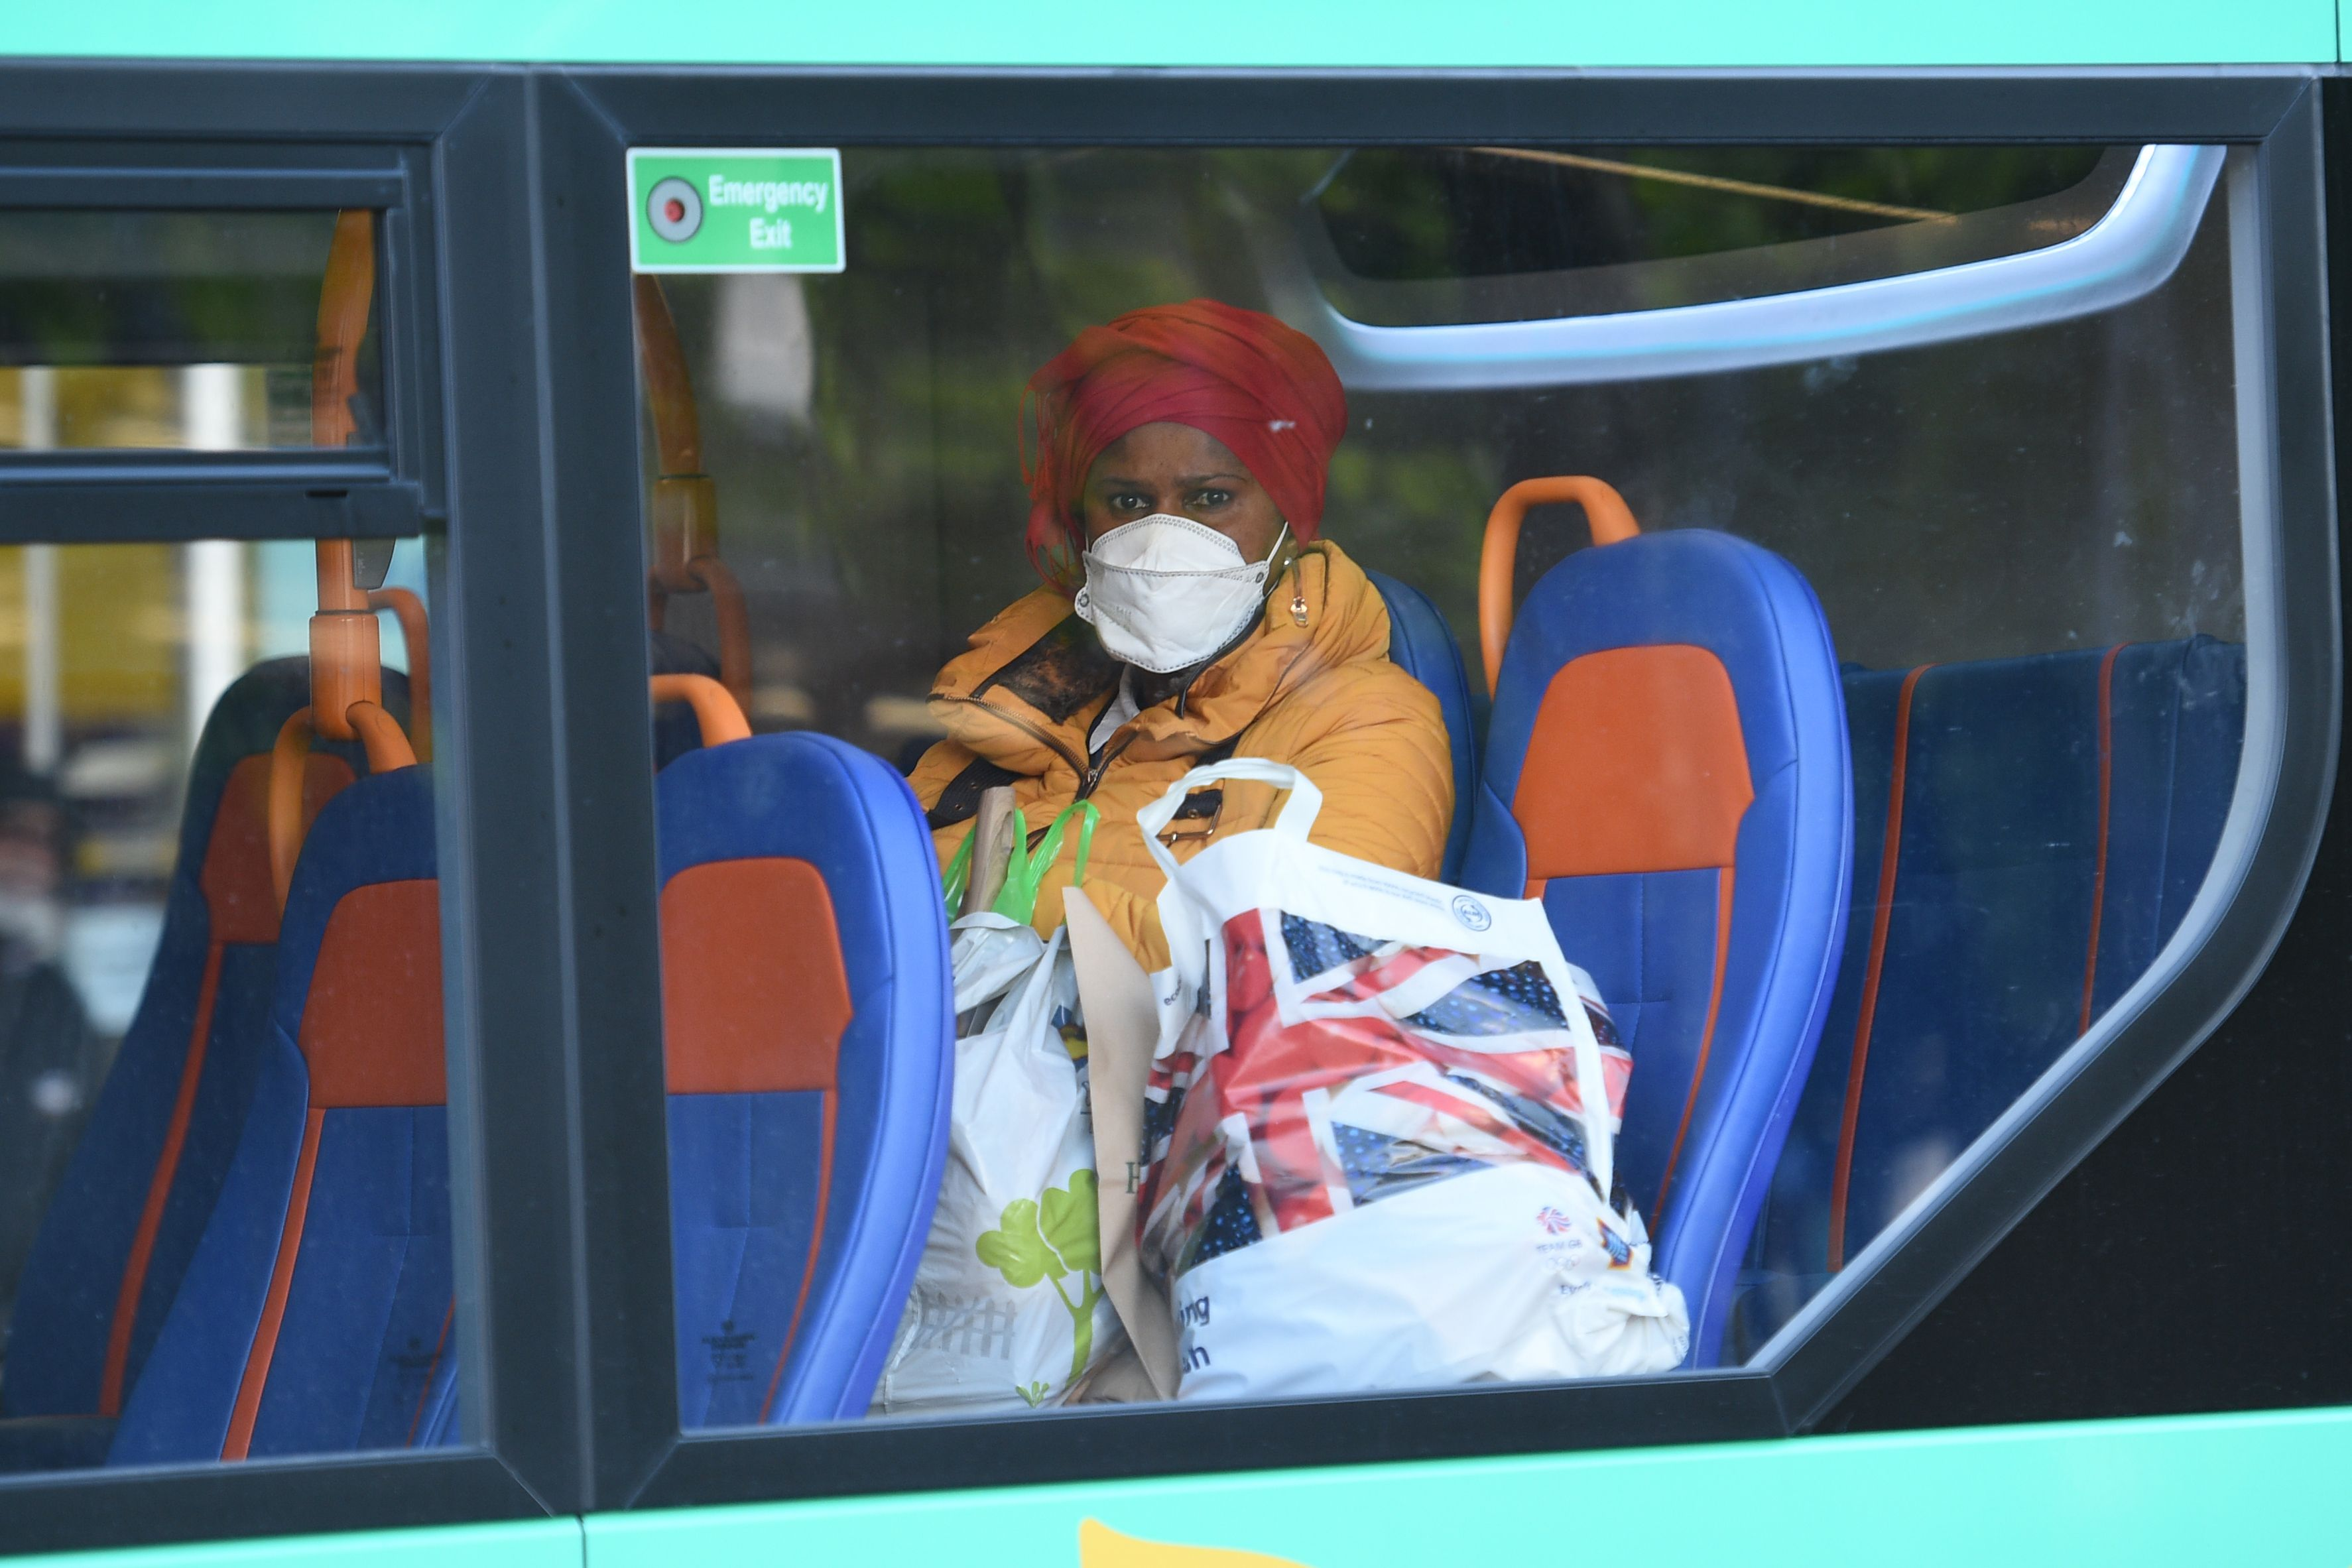 A woman wears a protective face mask on a bus in central Manchester on June 5, 2020, as lockdown measures are eased during the novel coronavirus COVID-19 pandemic. - Face coverings will soon be compulsory for people wanting to travel on public transport in England to limit the spread of coronavirus. (Photo by Oli SCARFF / AFP) (Photo by OLI SCARFF/AFP via Getty Images)